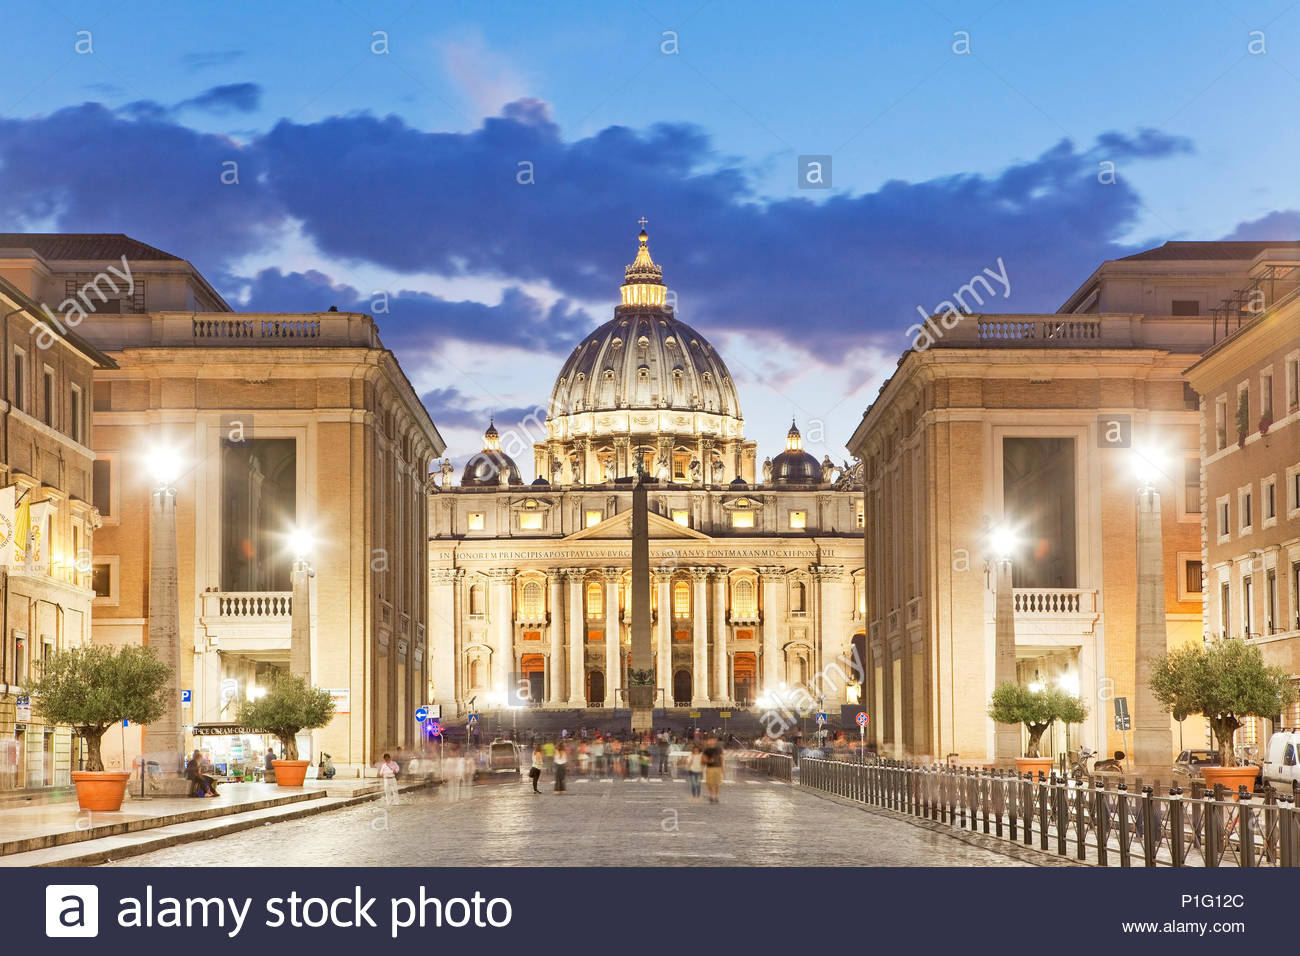 Italy, Rome, St. Peter's Basilica and Dome seen from Via della Conciliazione illuminated at dusk - Stock Image